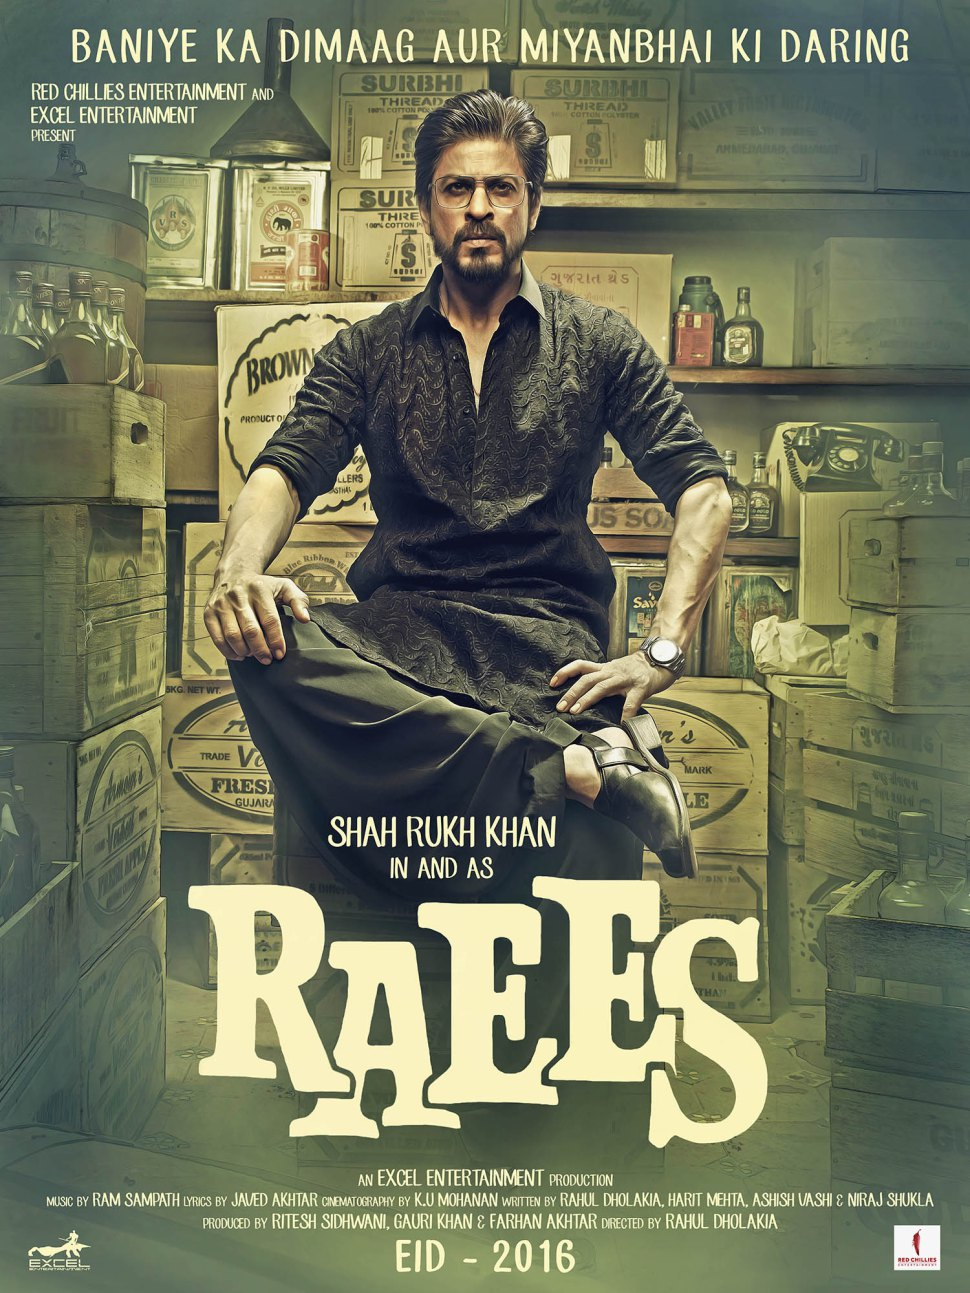 Shahrukh khan New Movie Raees Posters